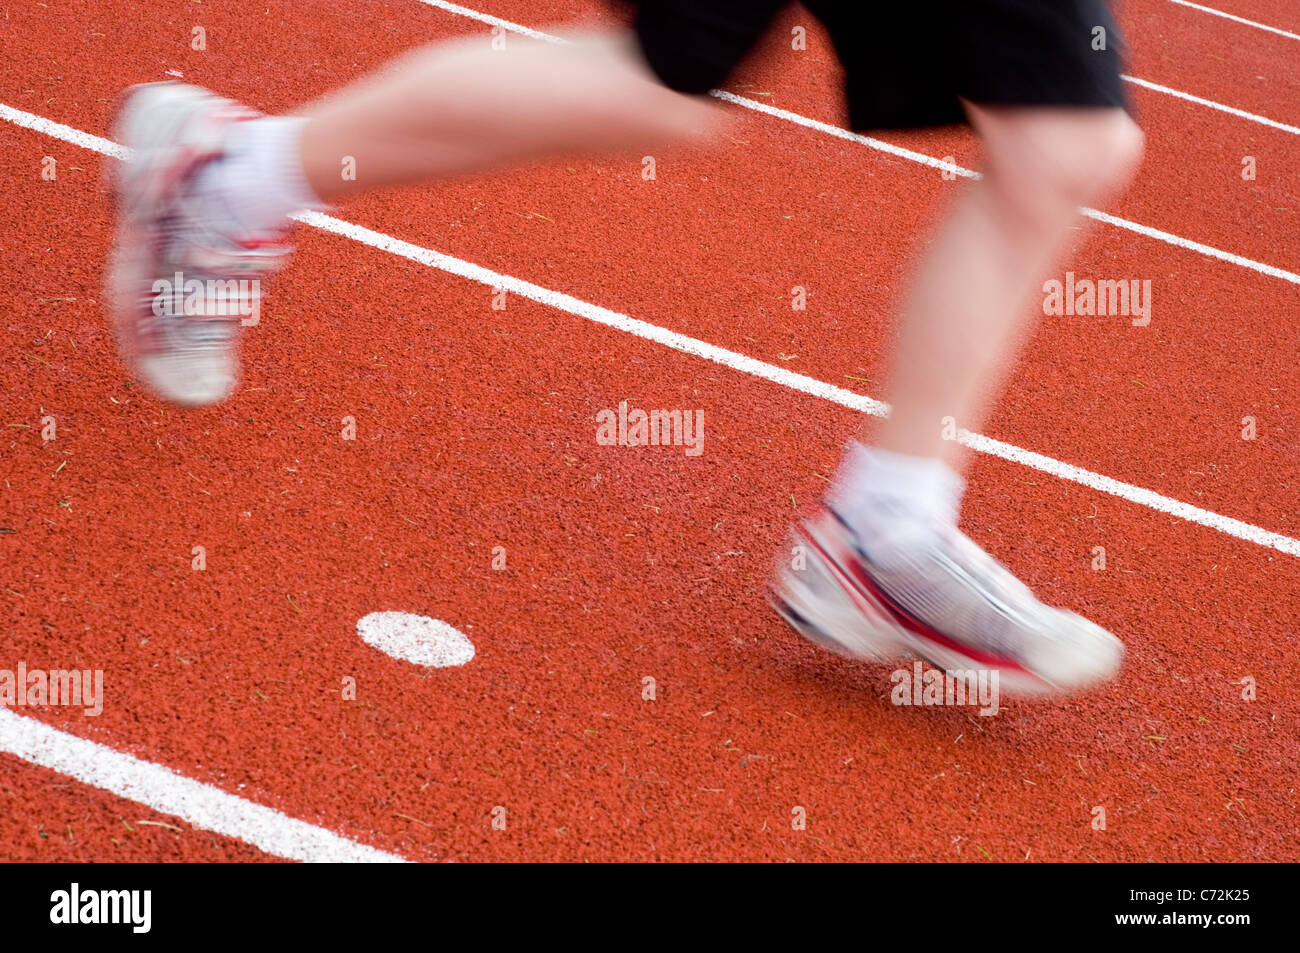 Detail of a runner on an athletics track - Stock Image